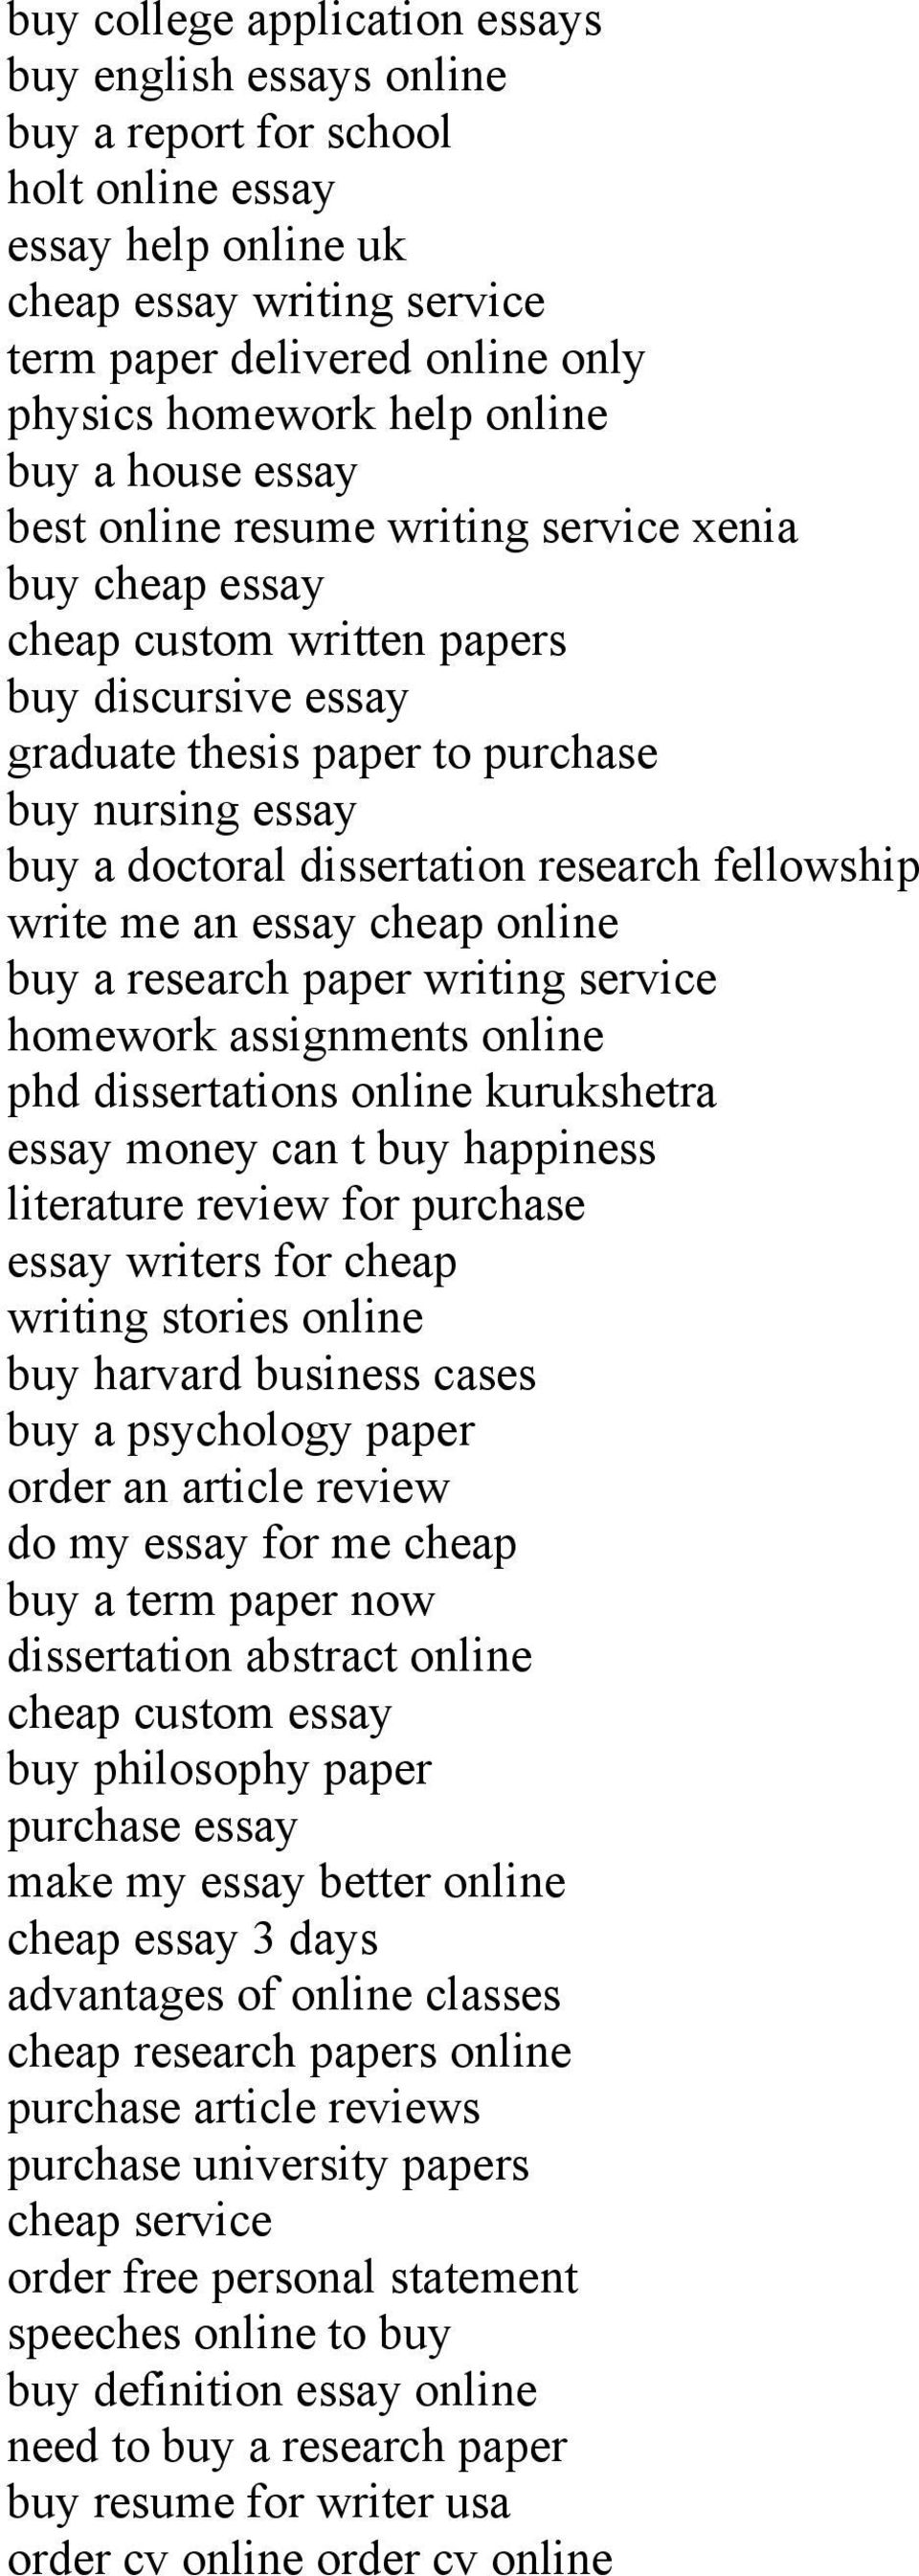 Free Online Essay Help  Pdf Doctoral Dissertation Research Fellowship Write Me An Essay Cheap Online Buy  A Research Paper Writing Service